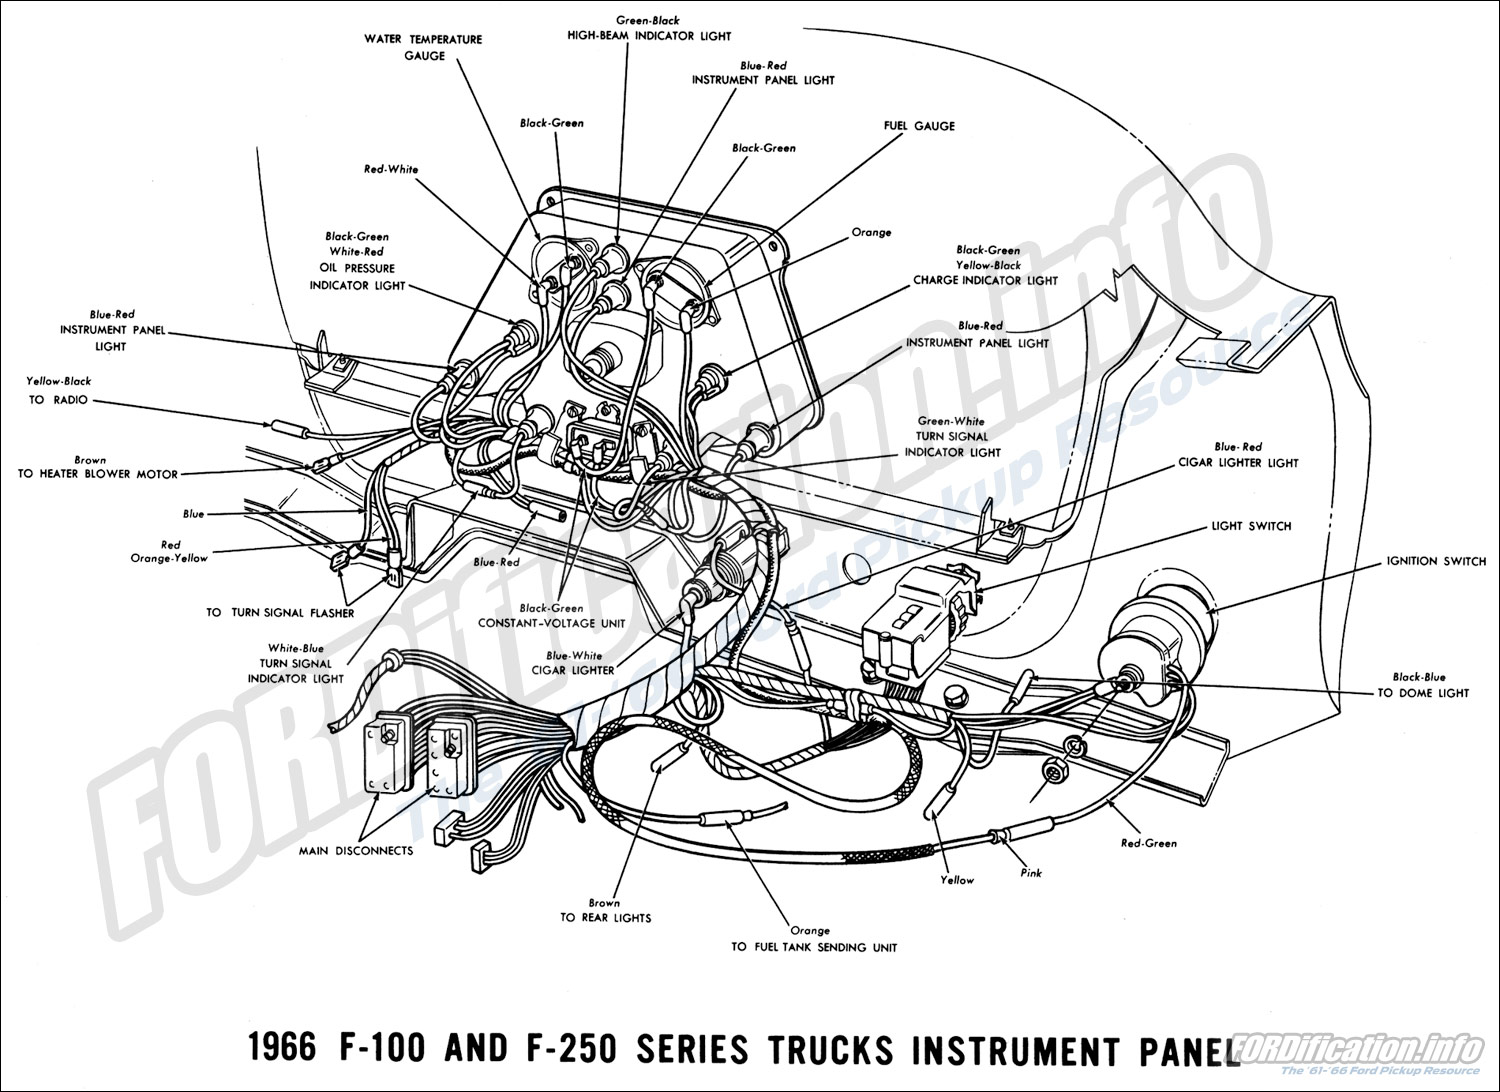 66instrumentpanel 1966 ford truck wiring diagrams fordification info the '61 '66 1966 ford truck wiring diagram at aneh.co